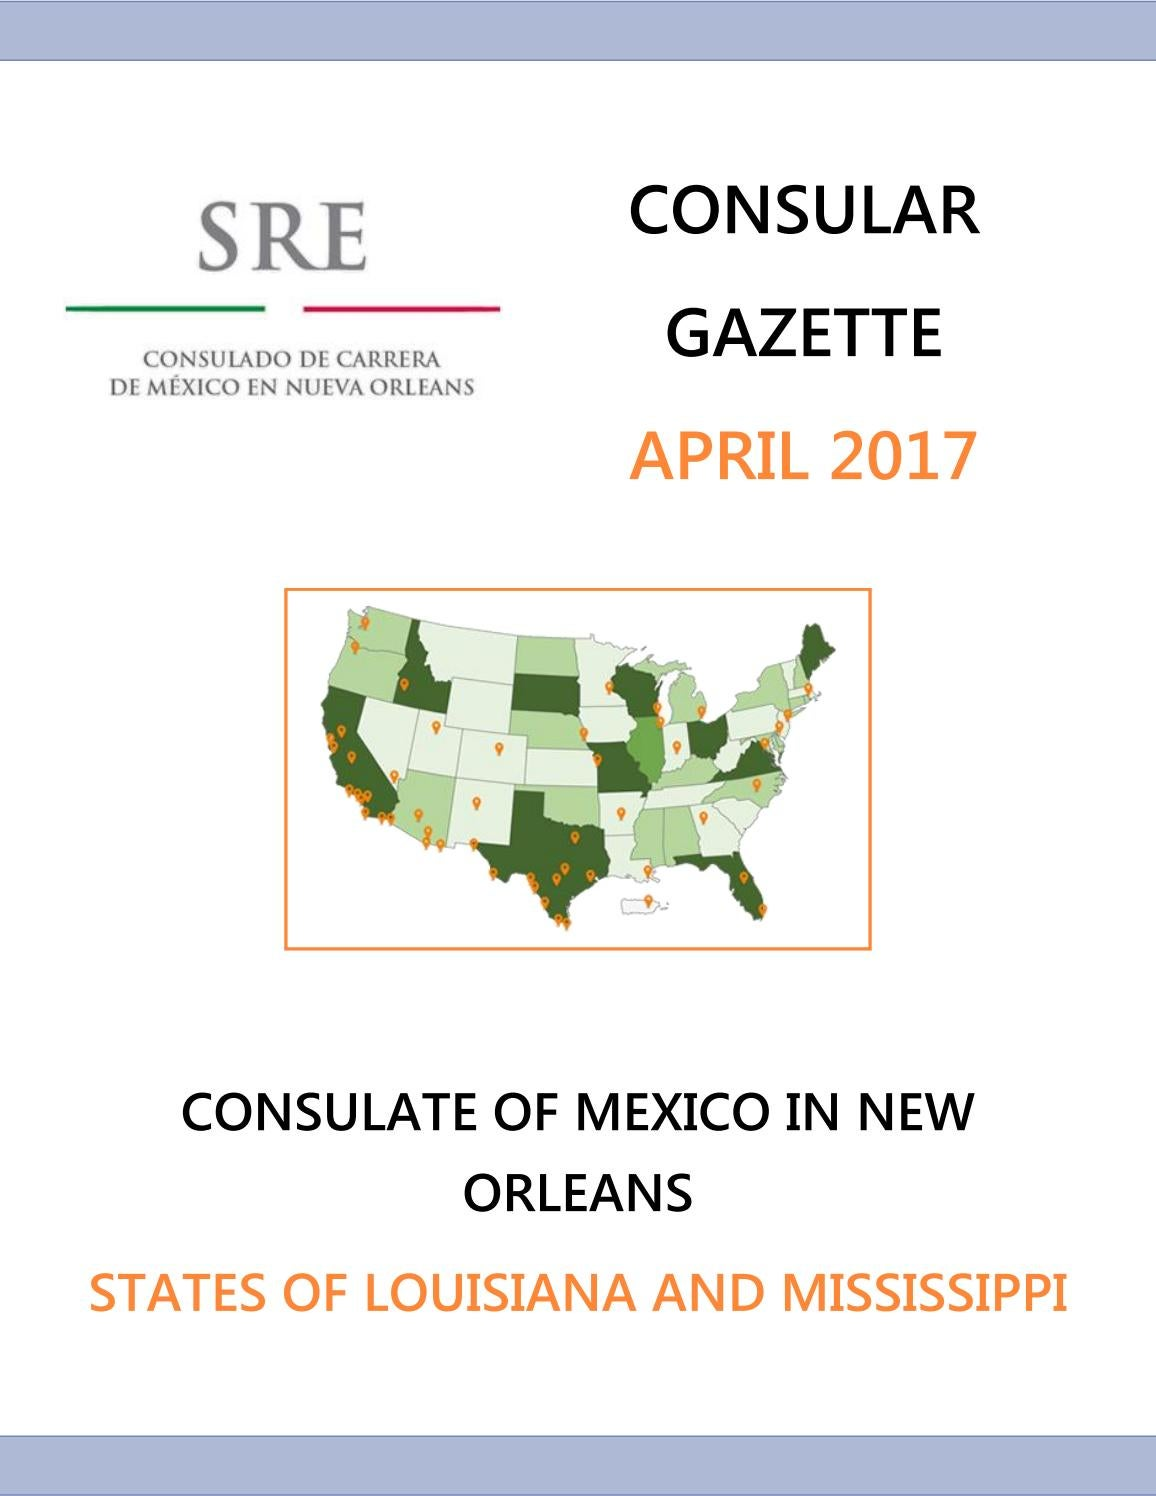 Consular Gazette April 2017 by Consulado de México en Nueva Orleans ...